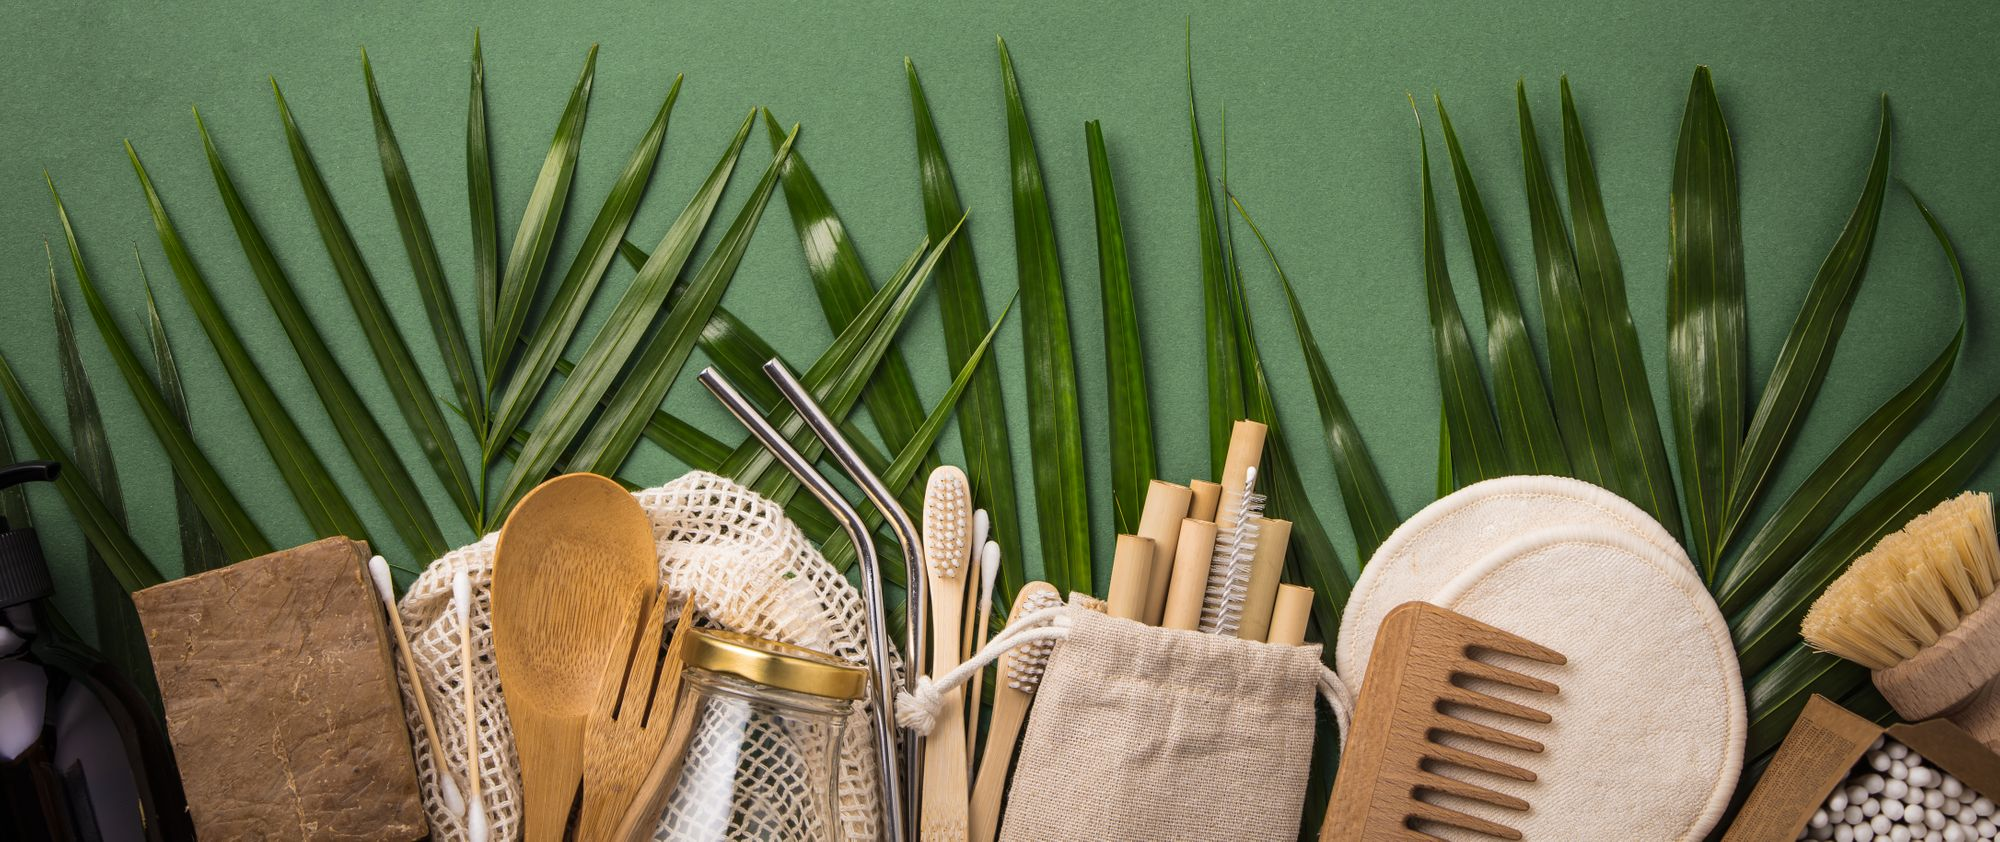 How to Source Sustainable Materials for Your Products: A Founder's Guide